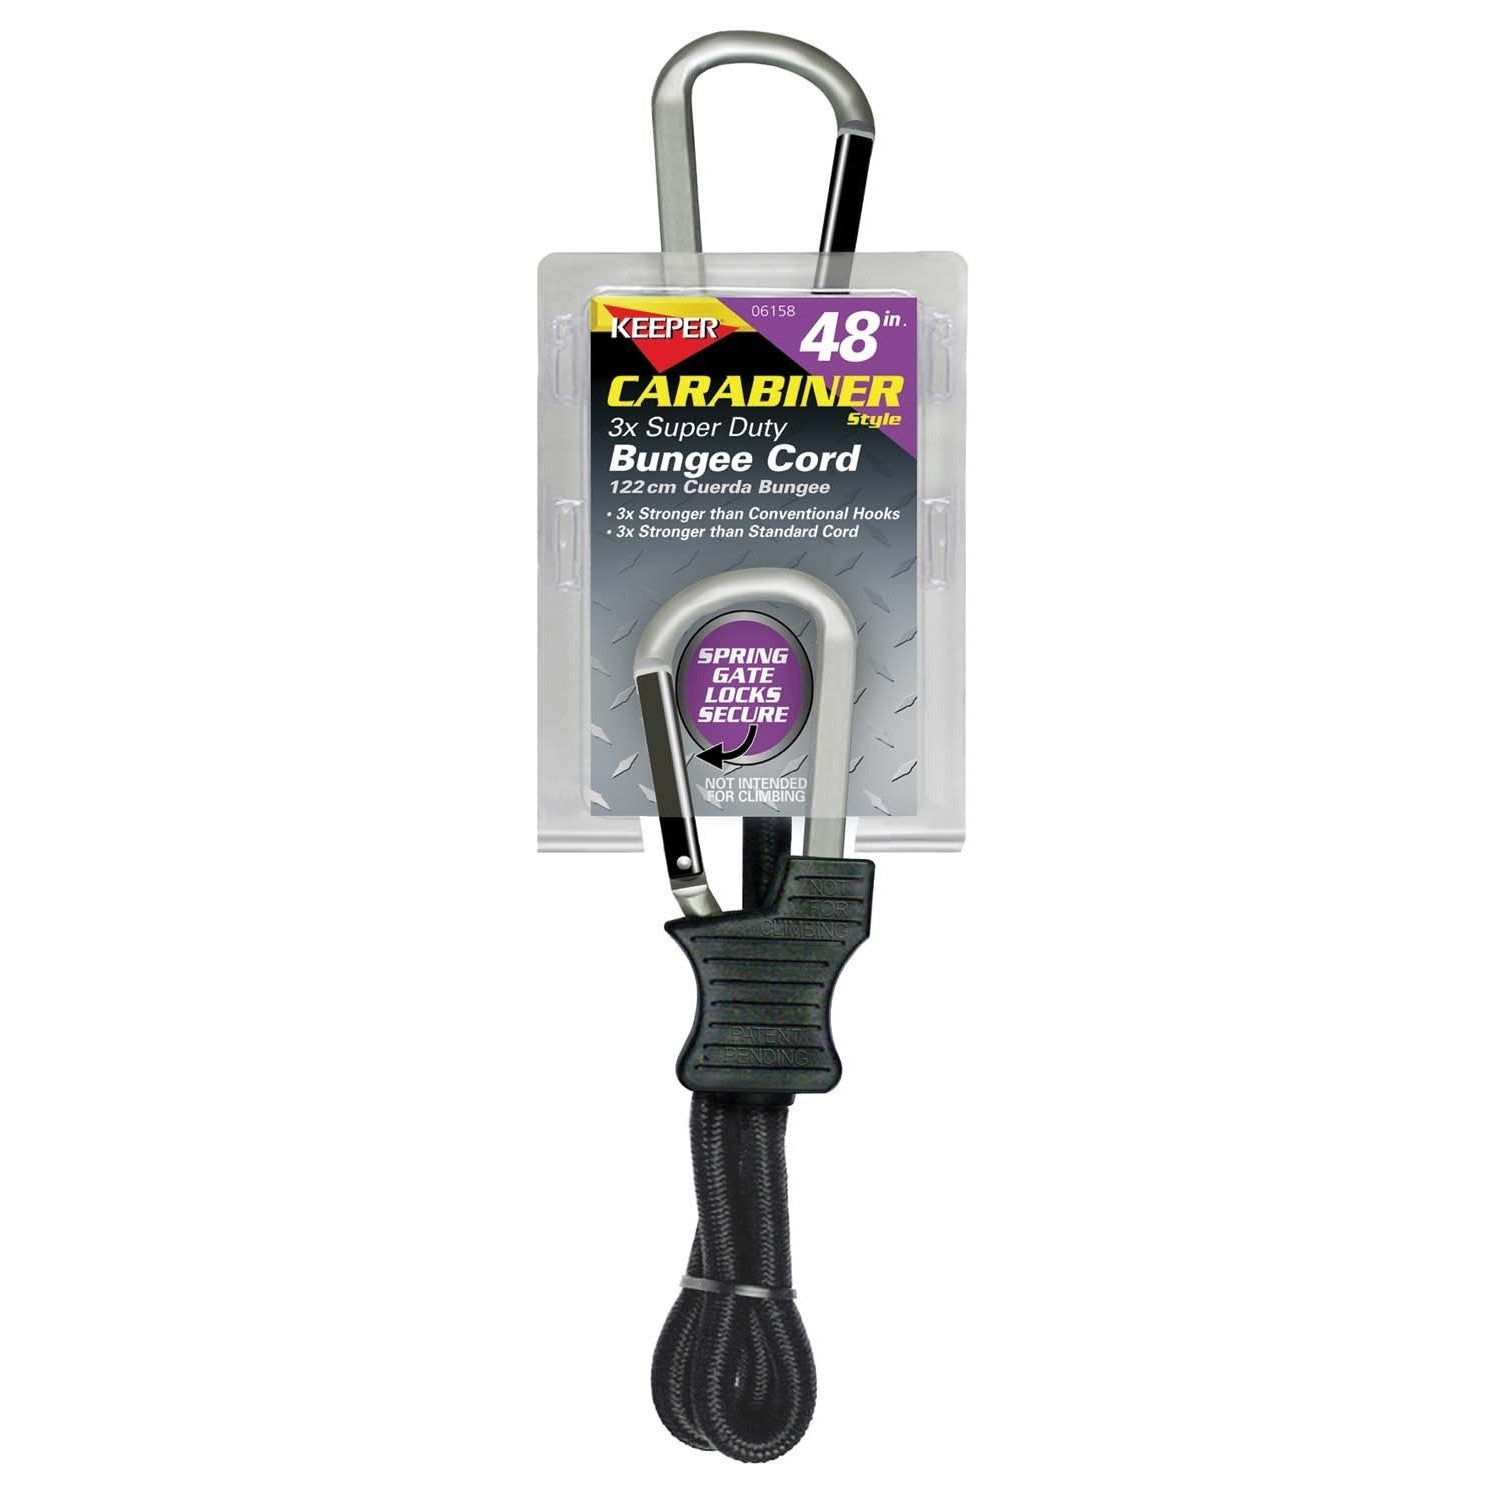 Keeper 06158 48-inch Carabiner Style Bungee Cord (Auto sp...